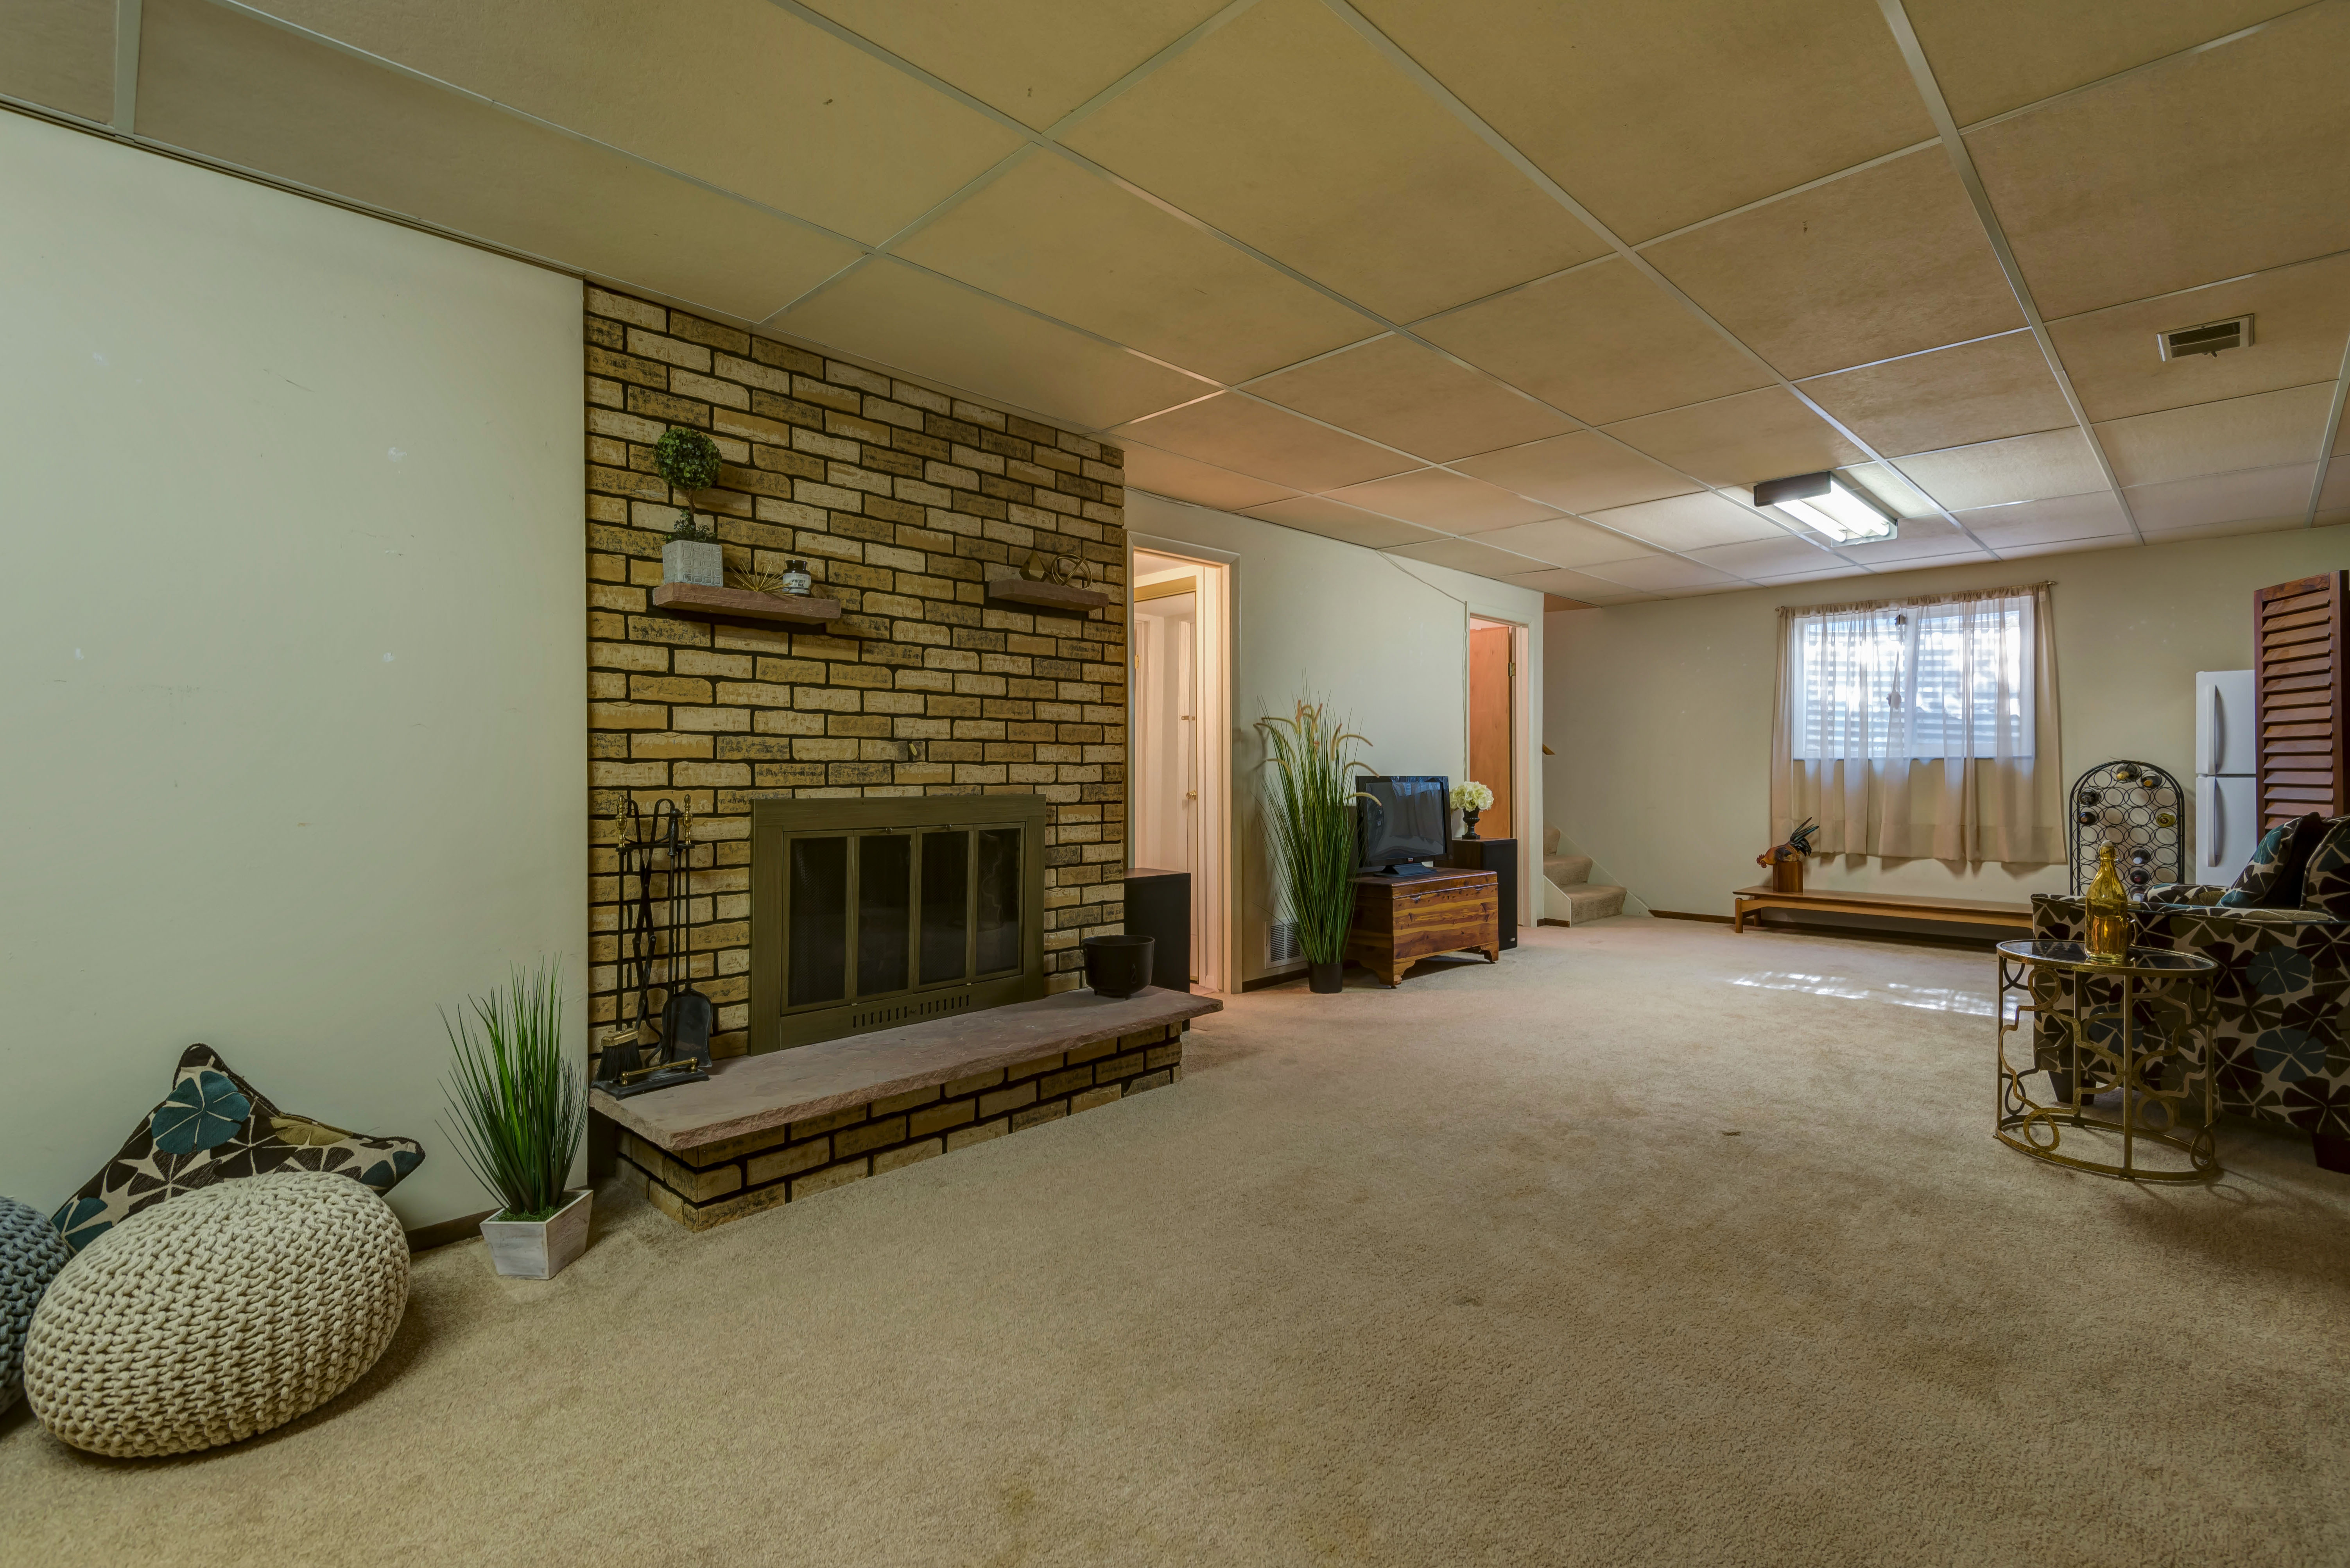 Fort Collins Home For Sale Fort Collins Real Estate By Angie Spangler